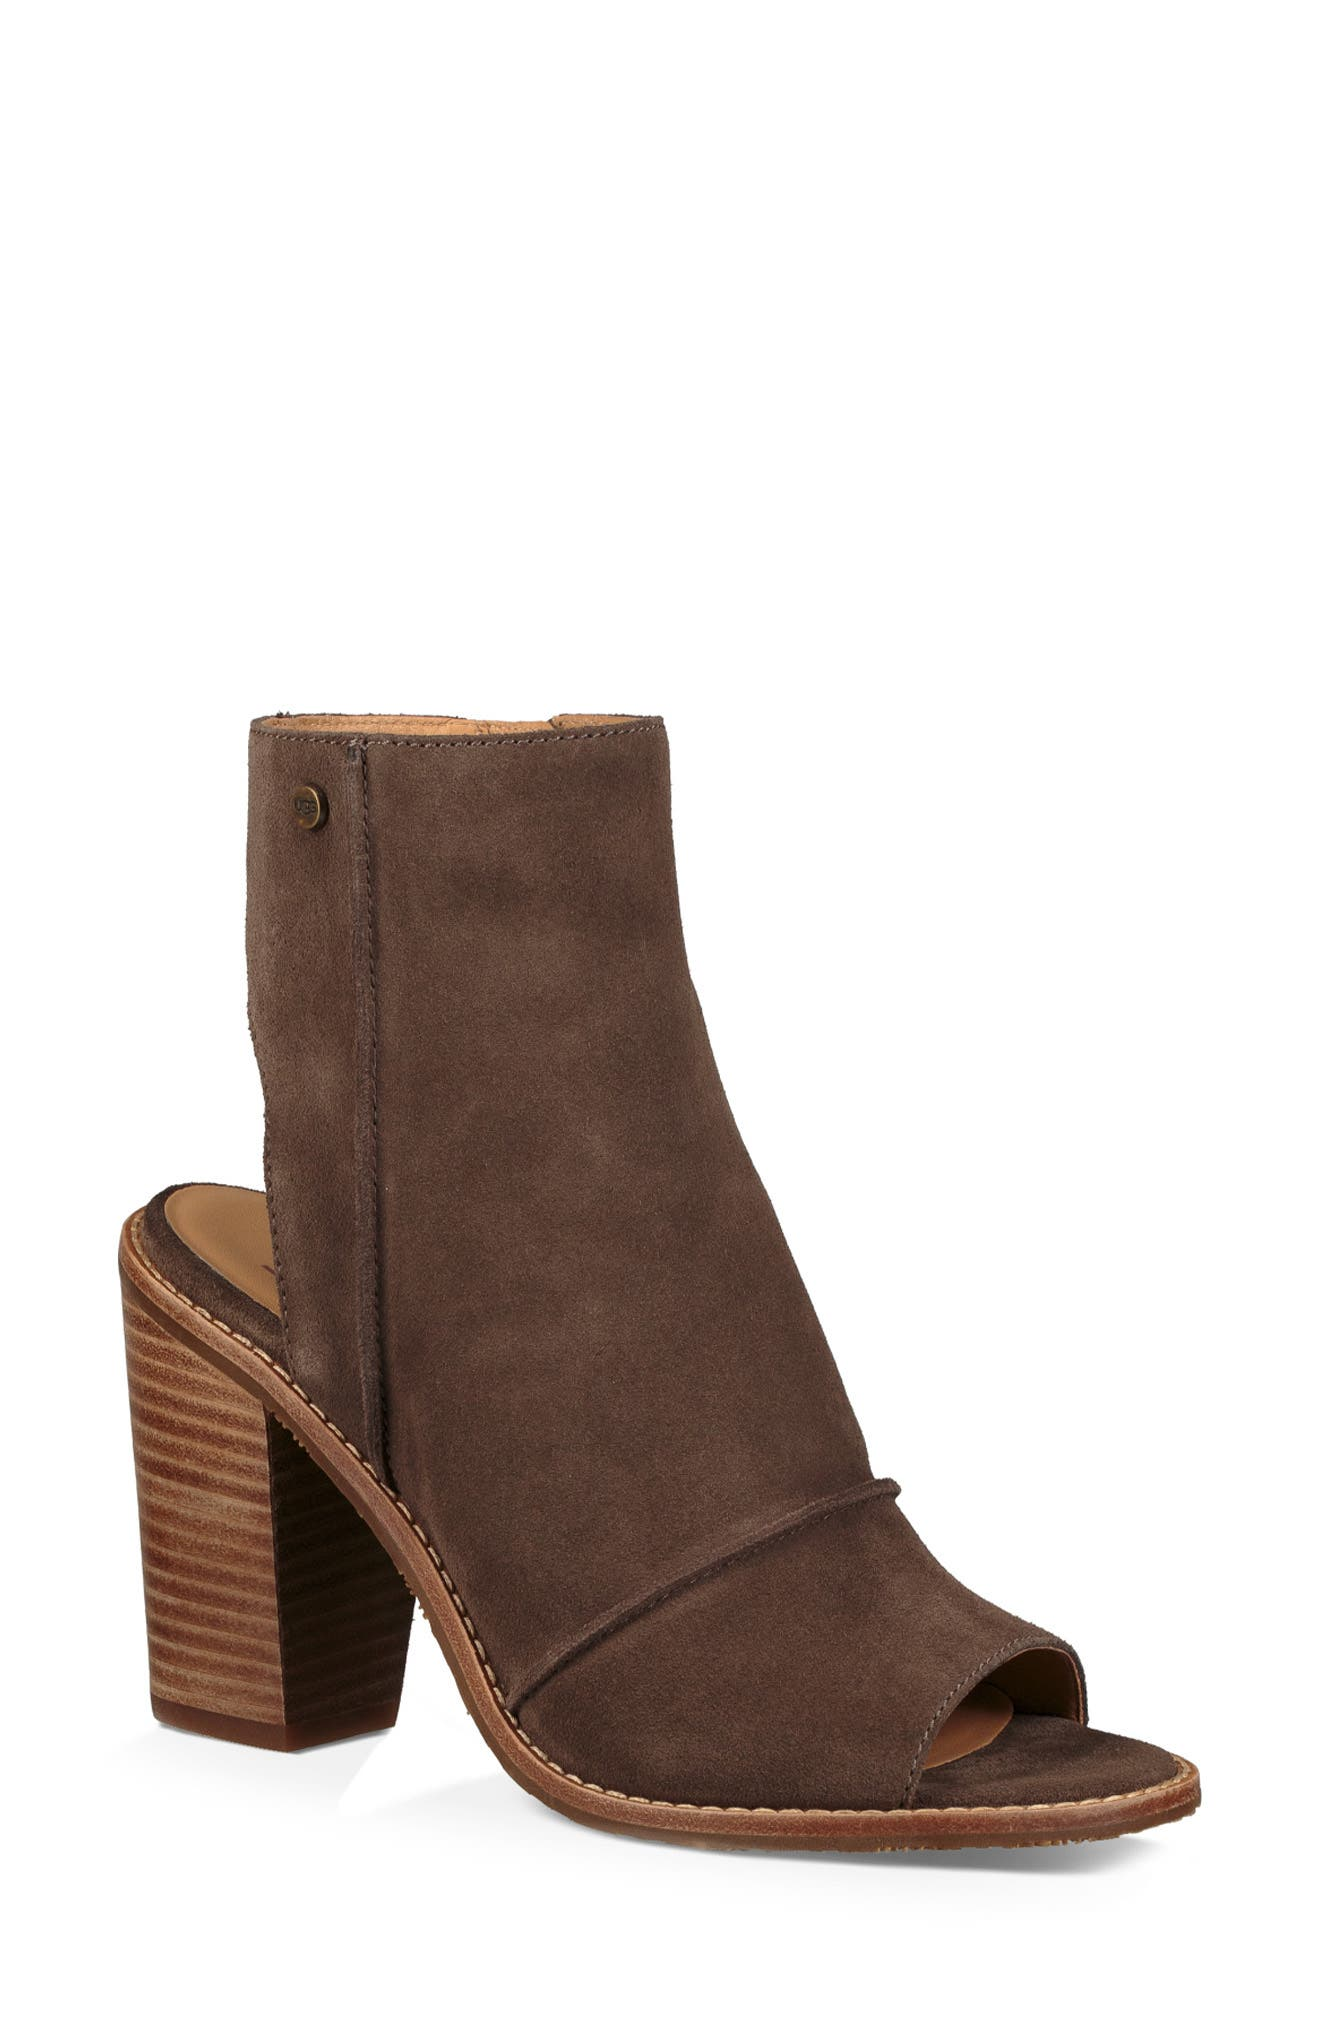 Valencia Peep Toe Bootie,                         Main,                         color, MYSTERIOUS LEATHER